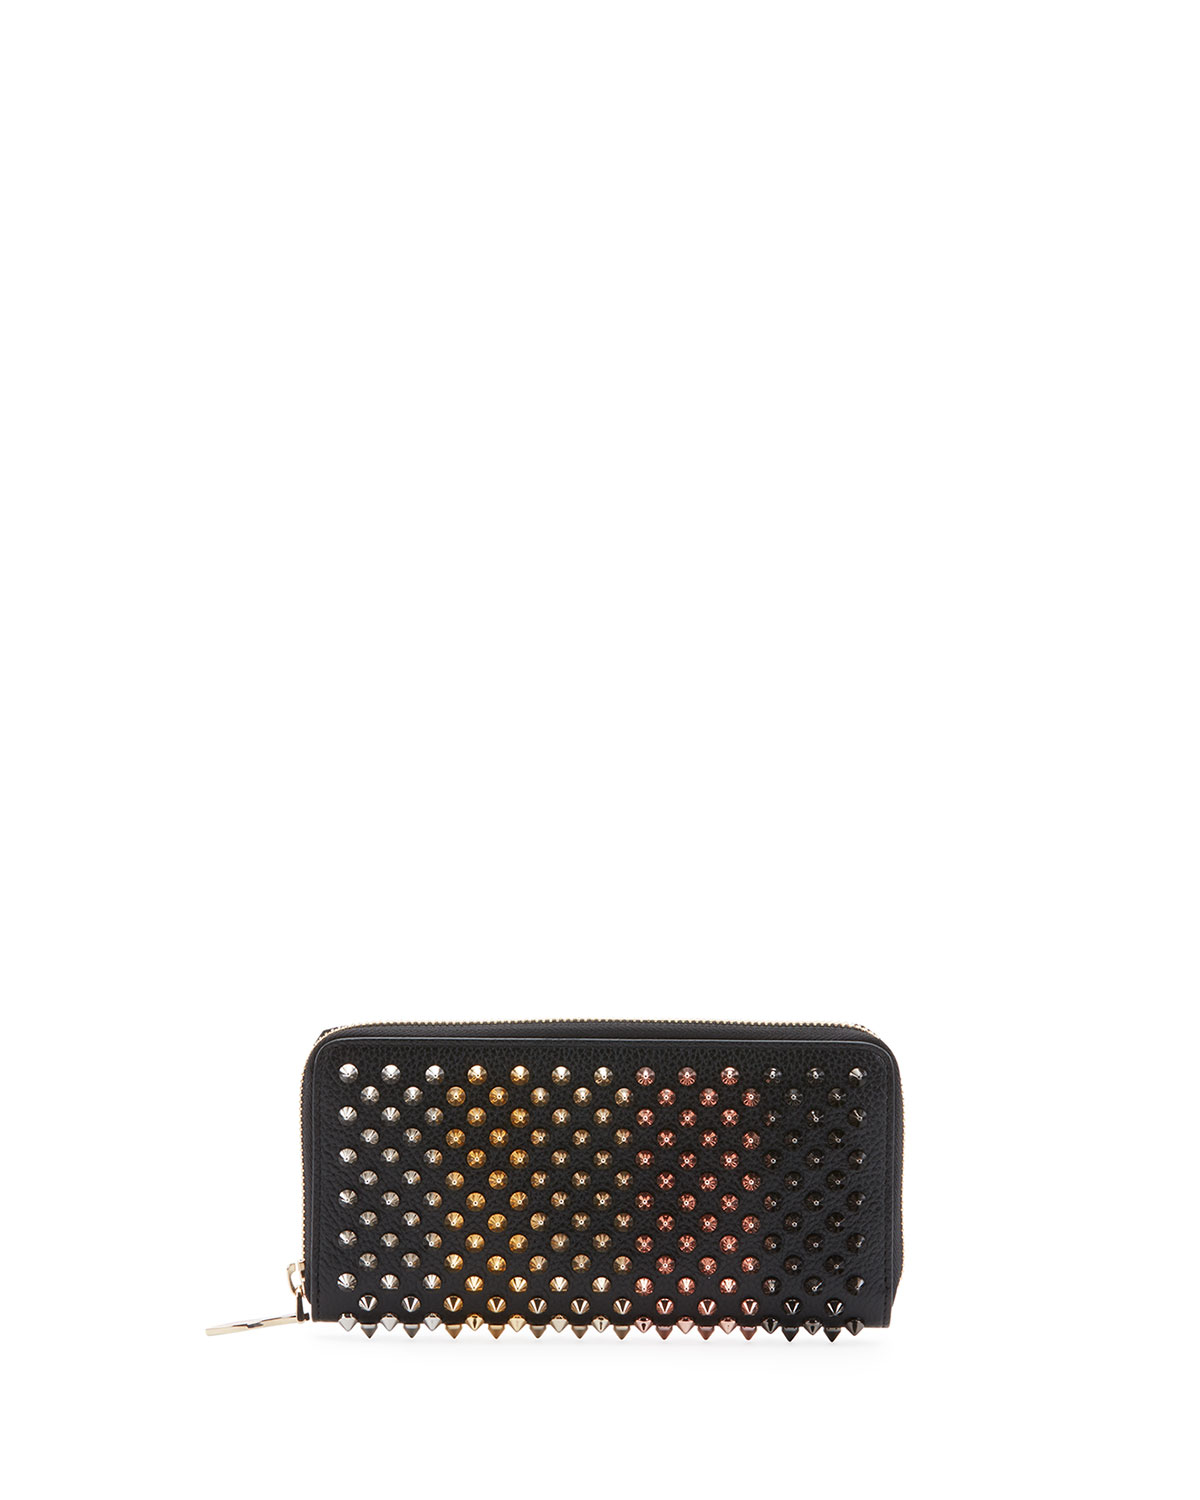 CHRISTIAN LOUBOUTIN PANETTONE SPIKED ZIP WALLET